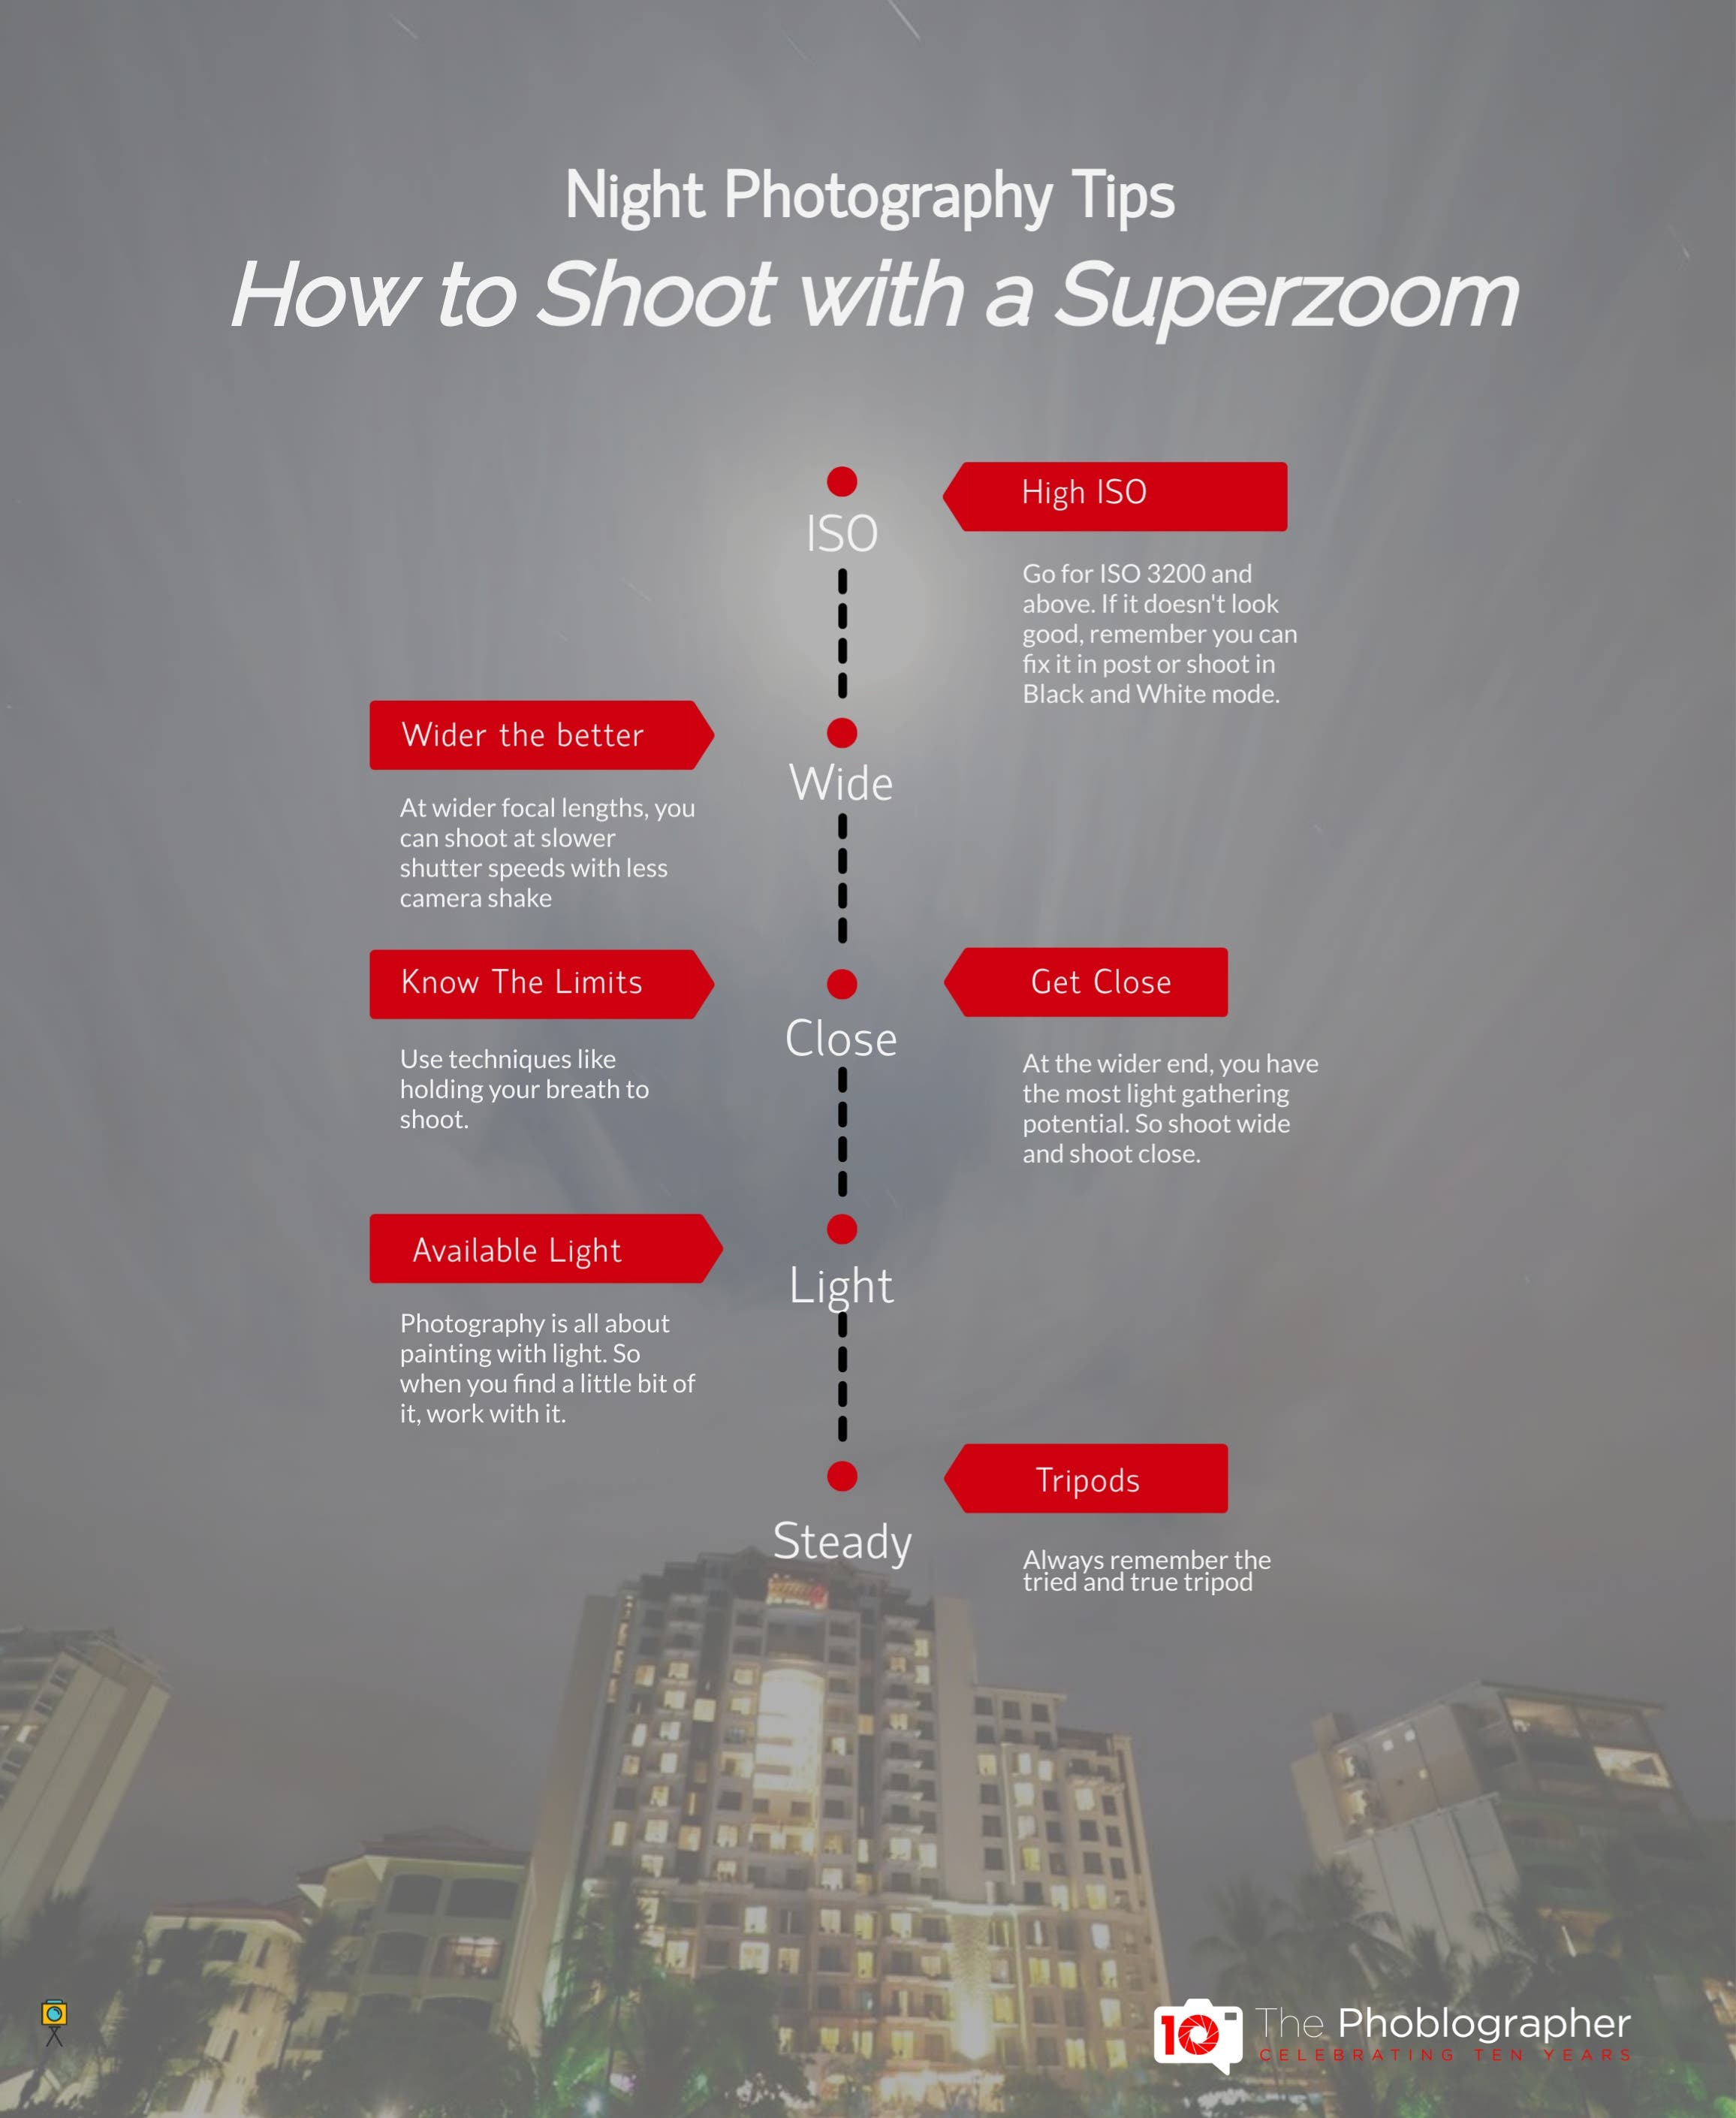 Master Shooting at Night with Superzoom Lenses with These Helpful Tips